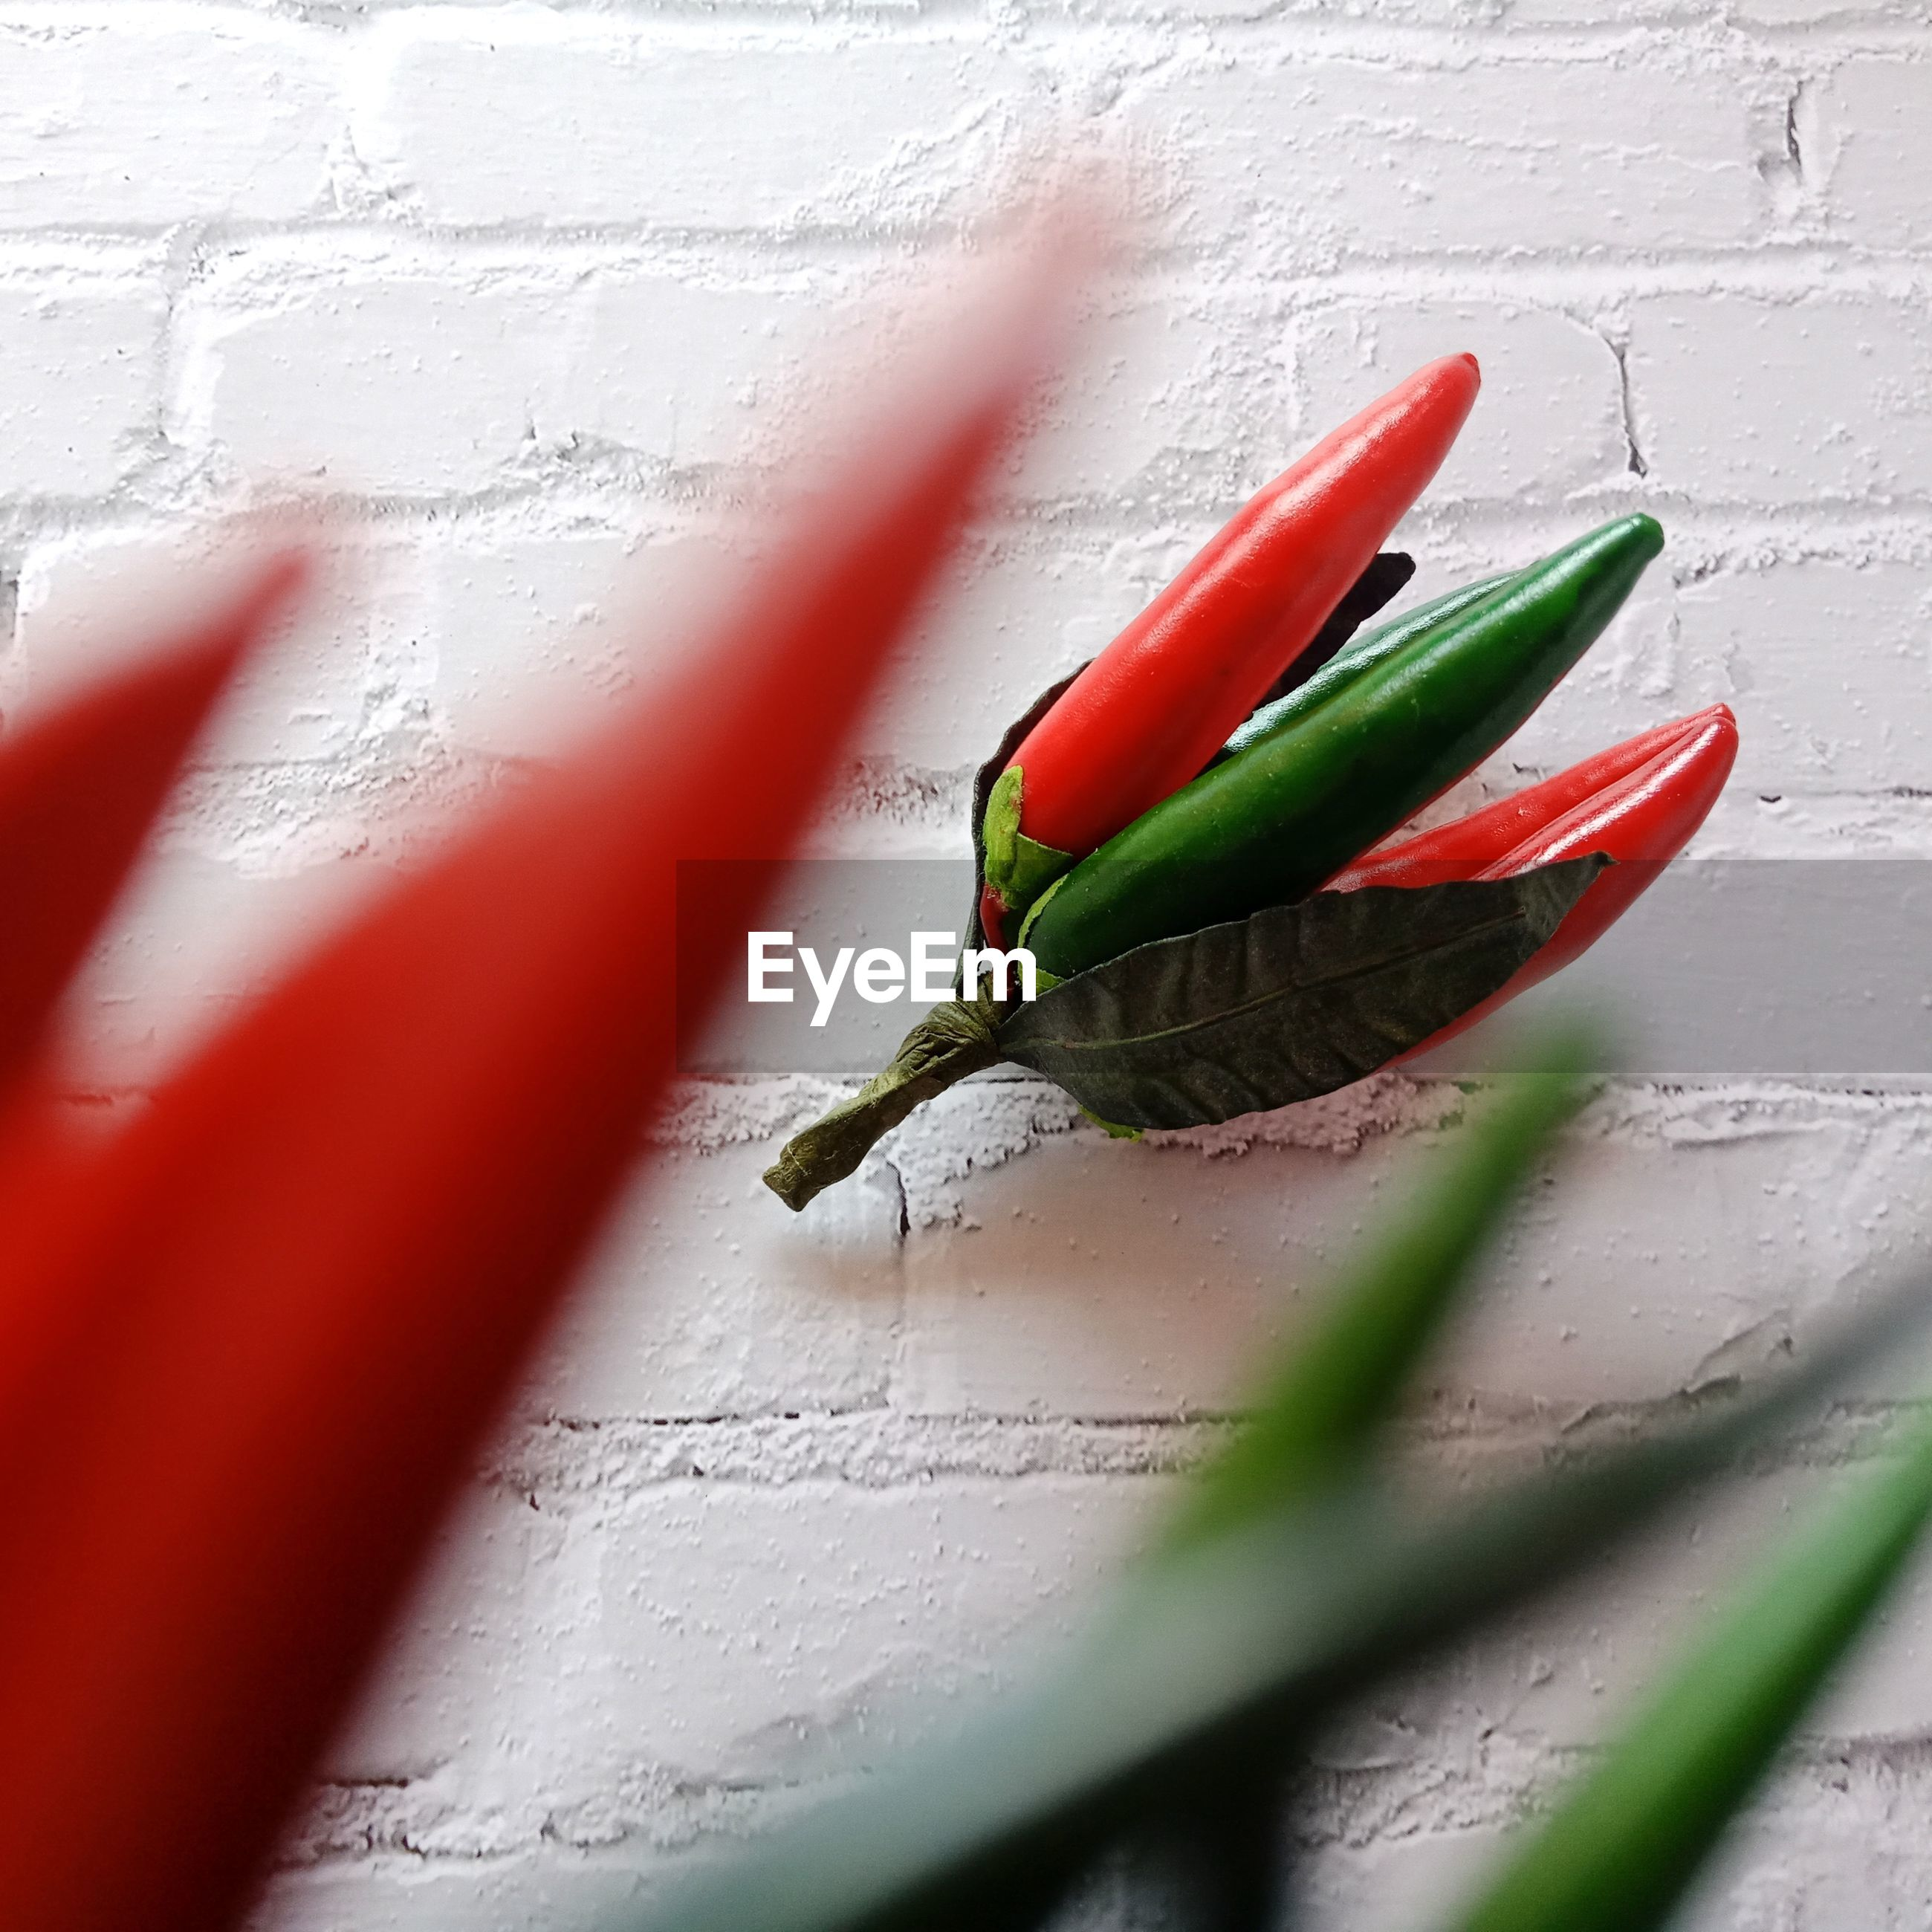 CLOSE-UP OF RED ROSE ON WALL